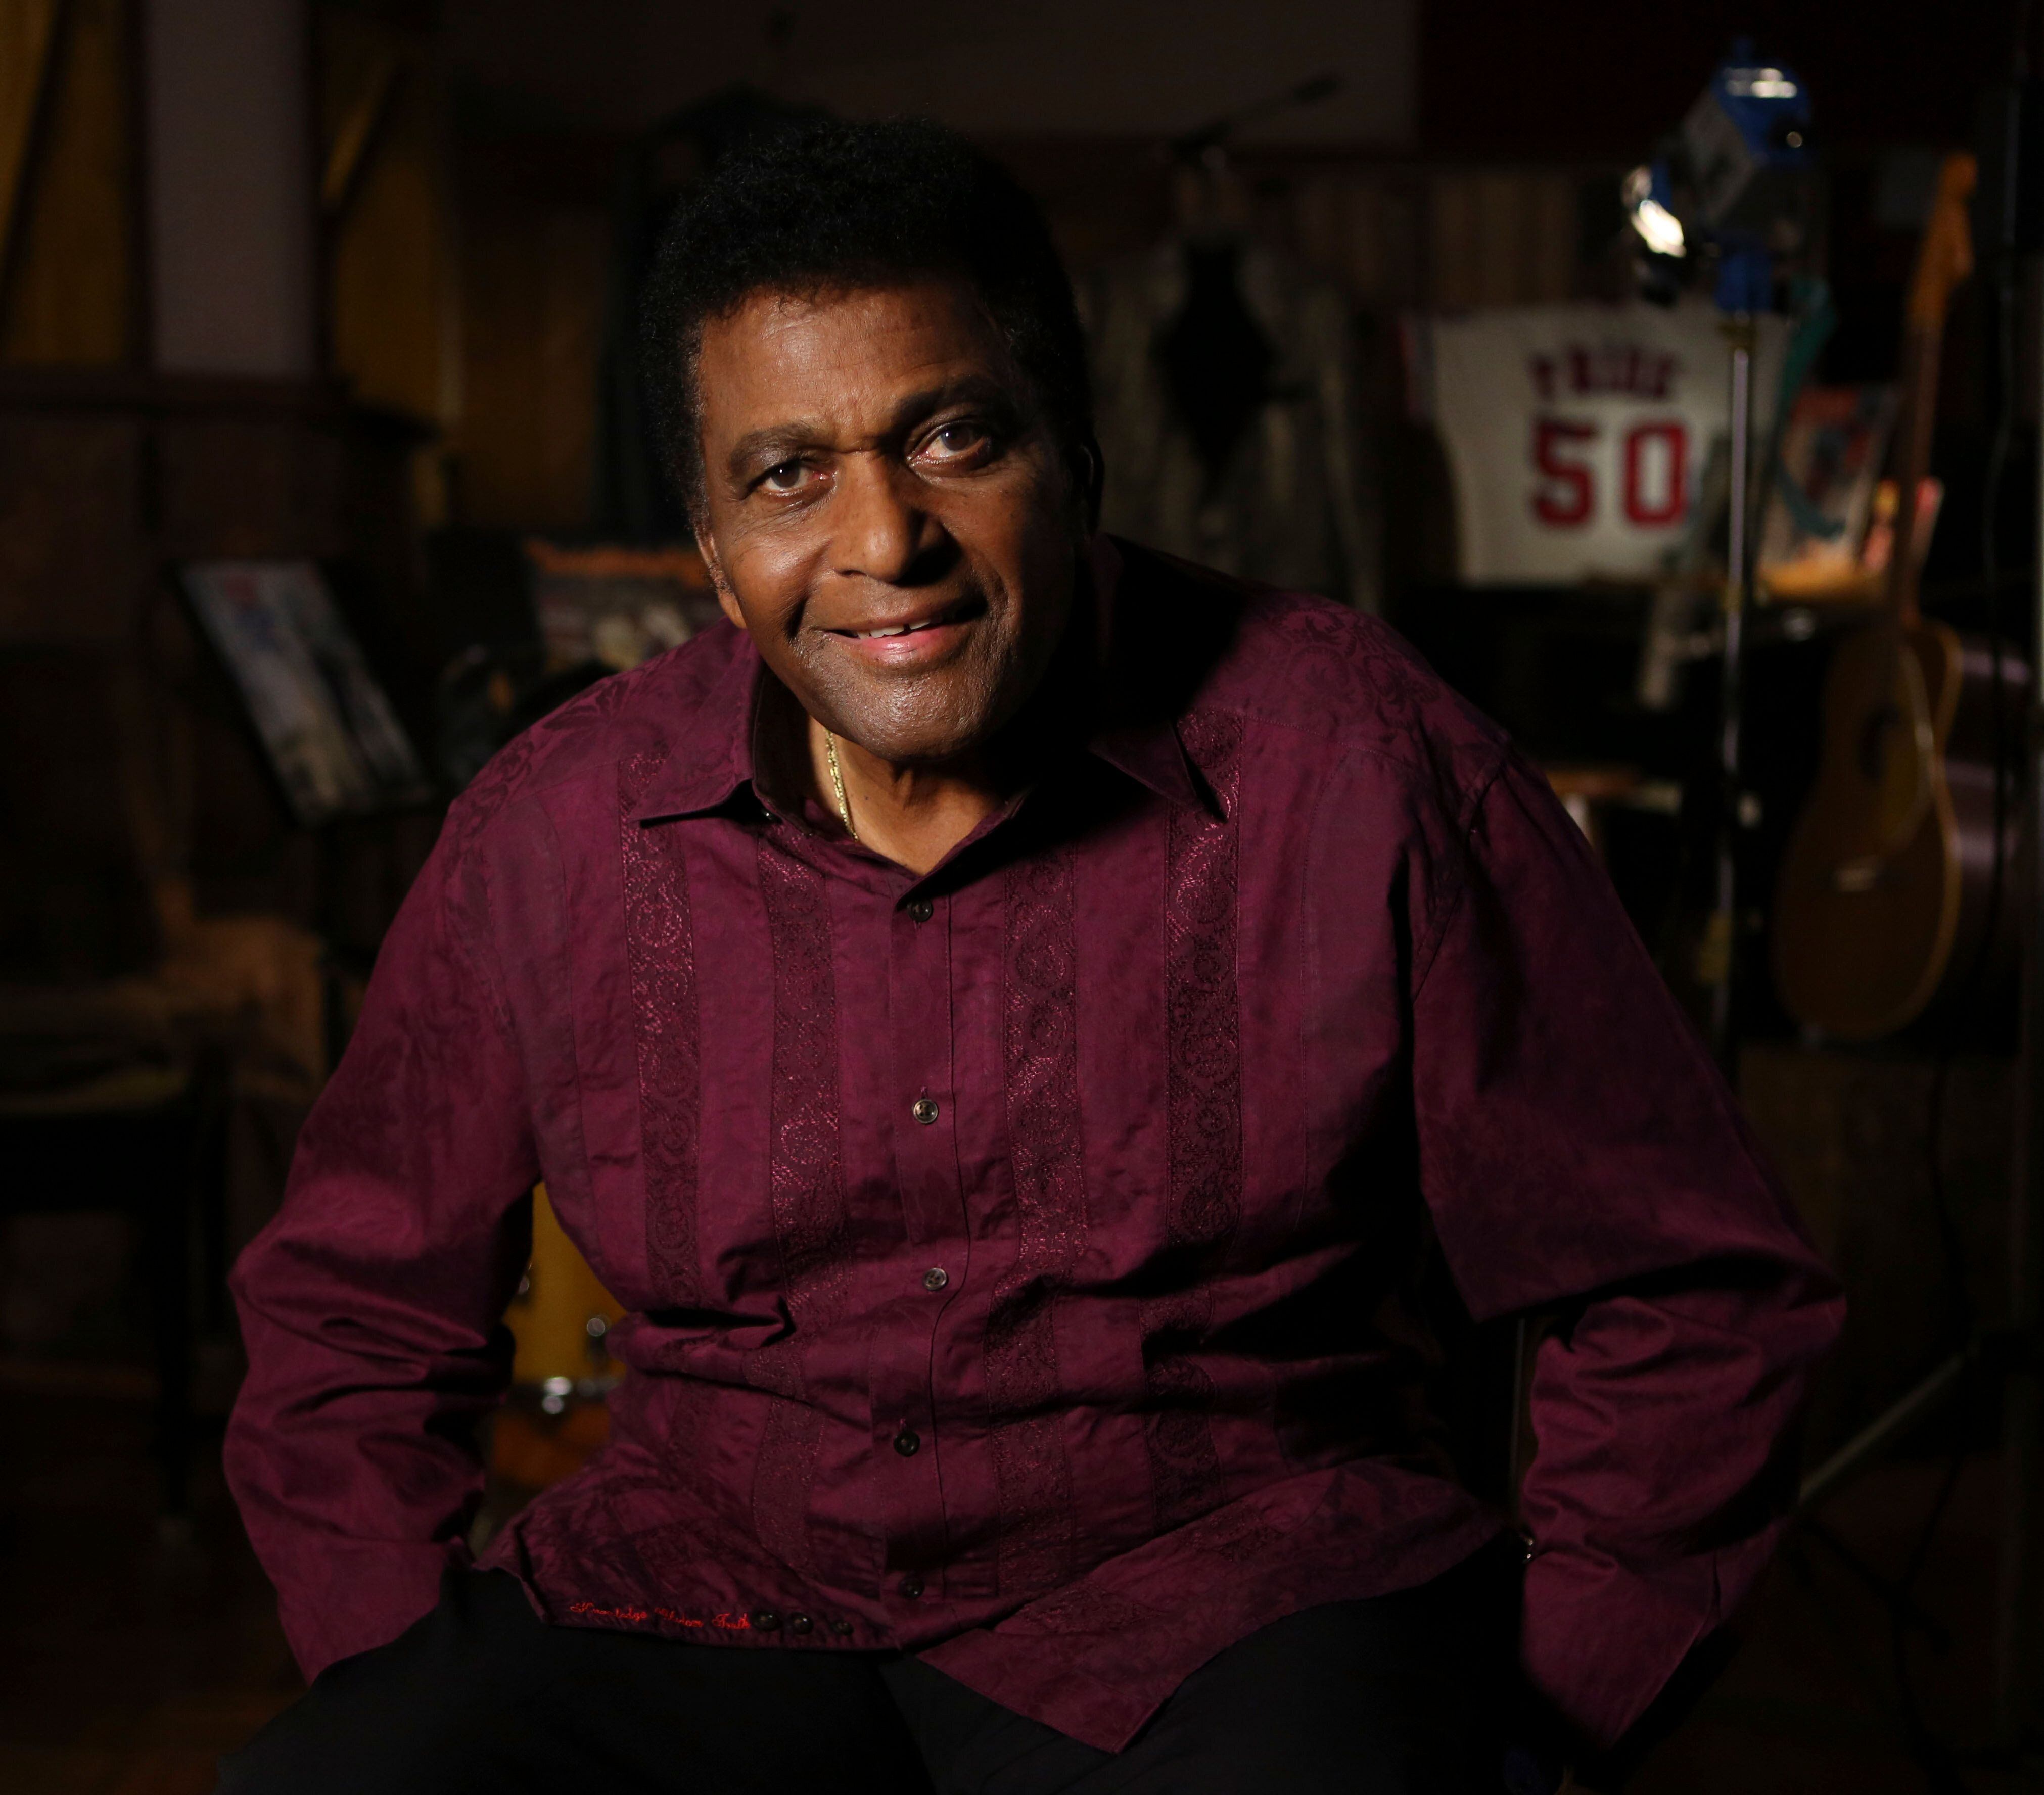 Country music legend Charley Pride smiles for a portrait at his recording studio in Dallas, Texas, Monday, Sept. 24, 2012.&nb